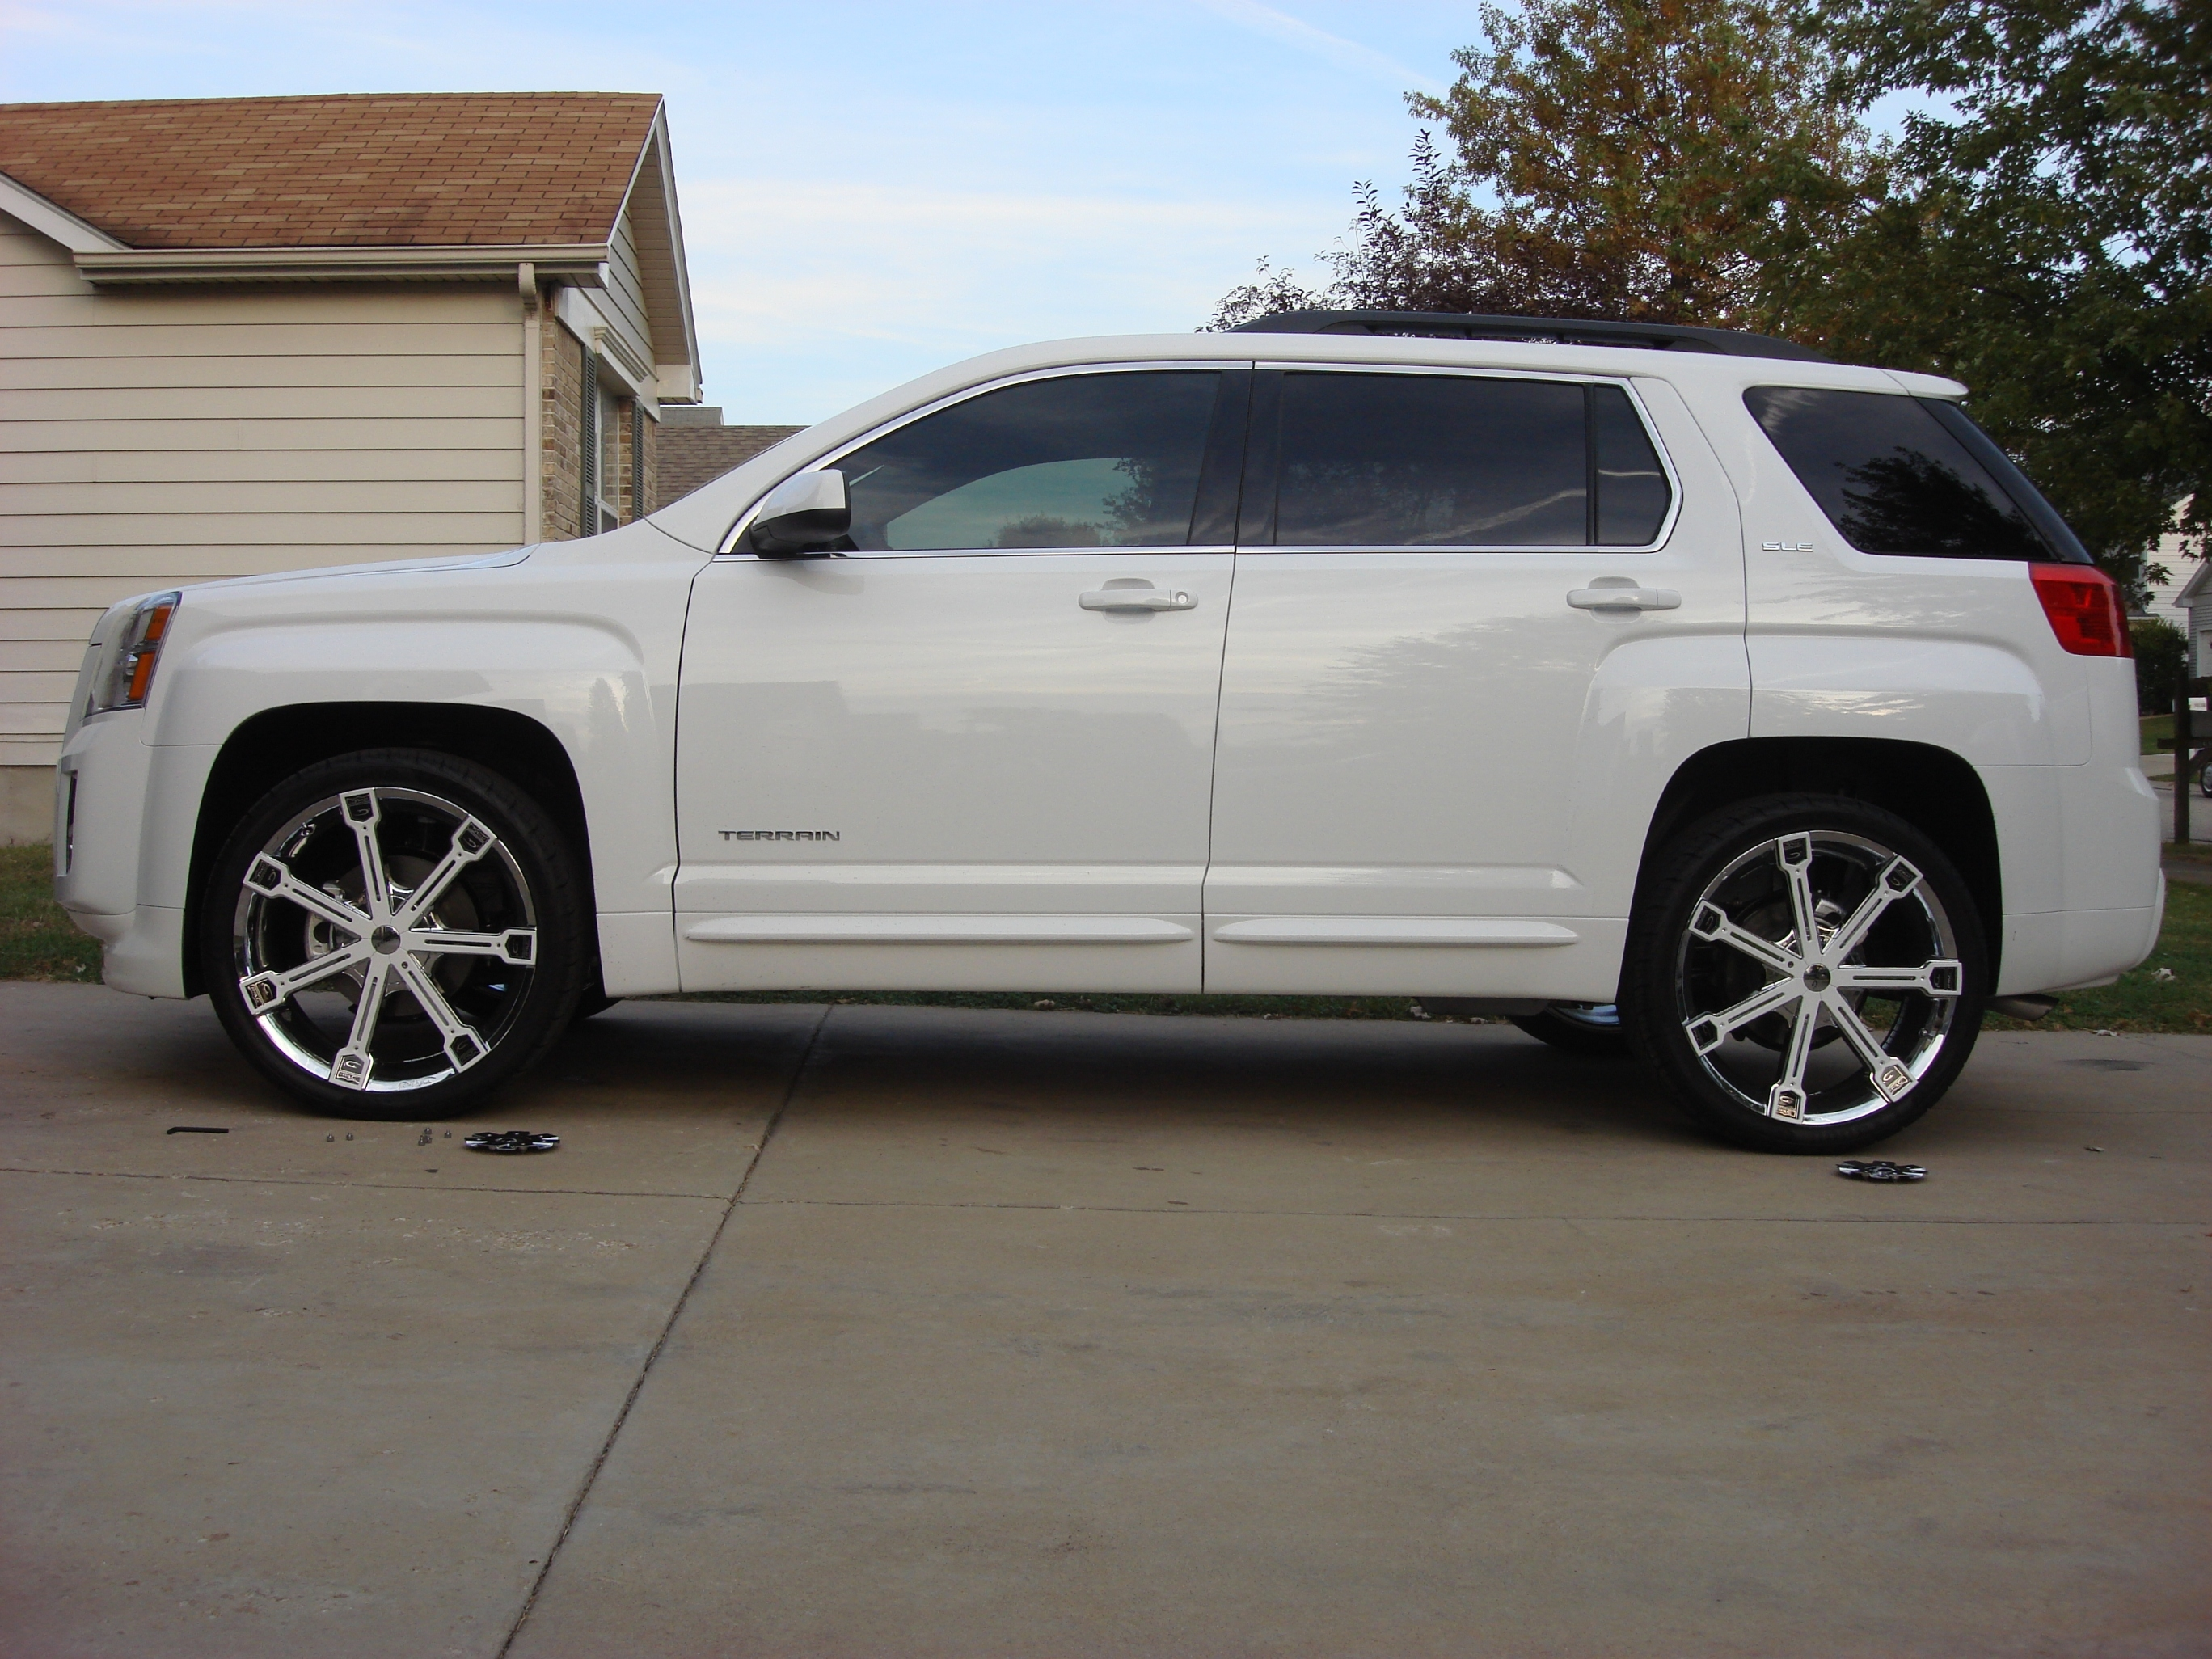 image gmc gallery share slt terrain download and best